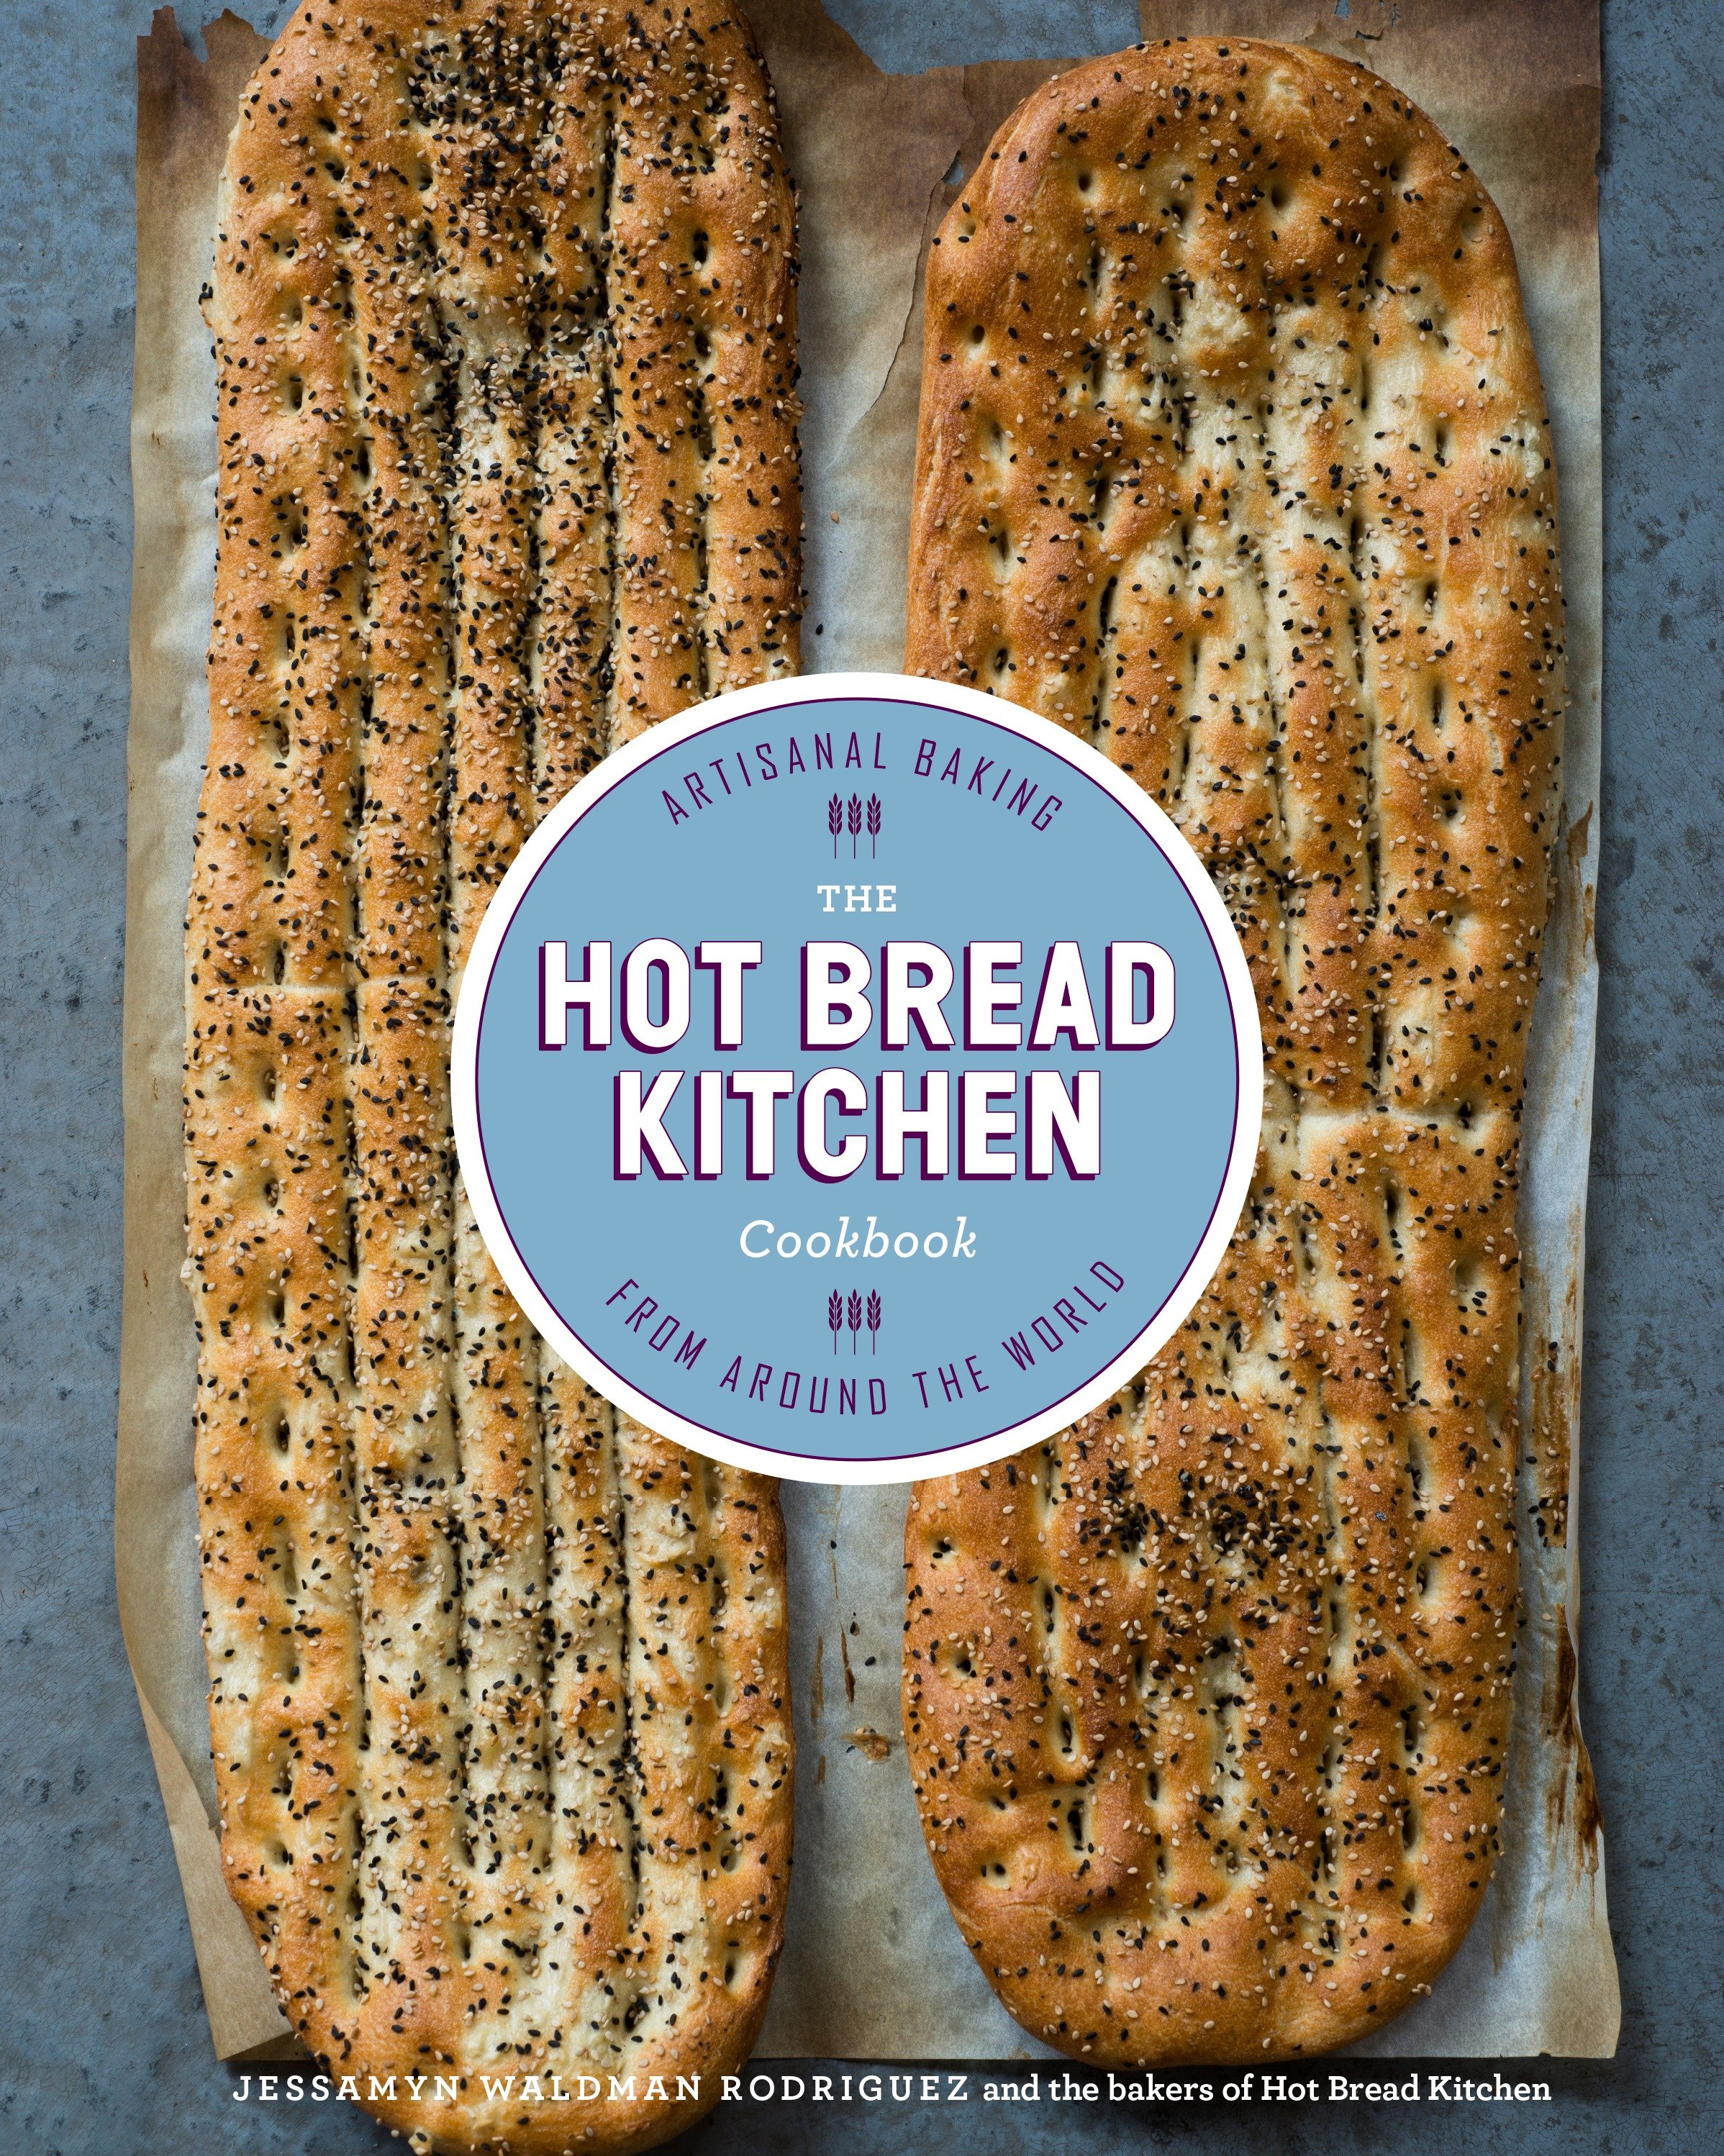 The Hot Bread Kitchen Cookbook Artisanal Baking from Around the World